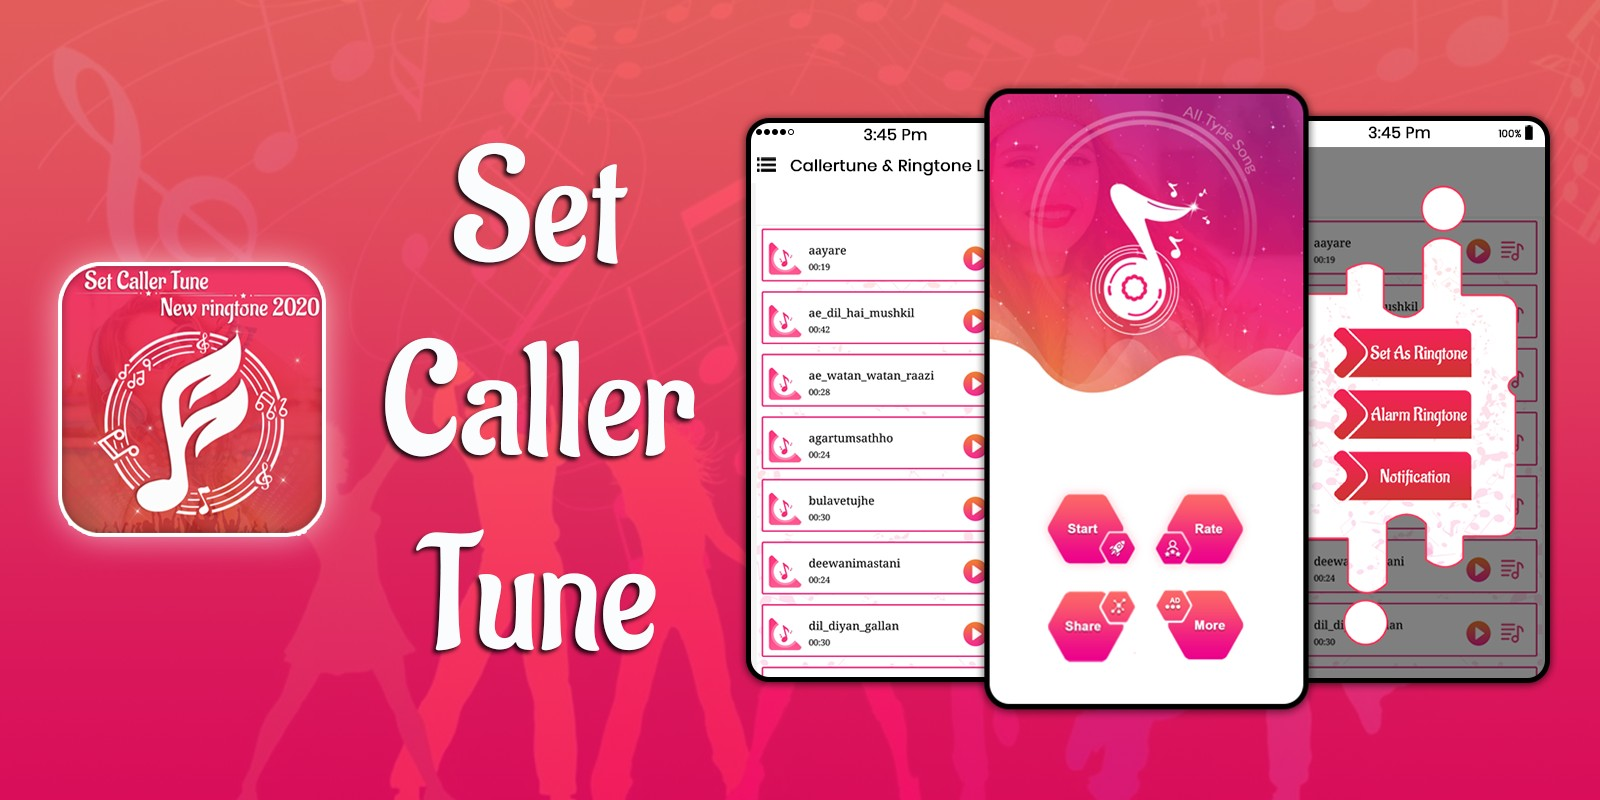 Set Caller tune Song - Android Source Code